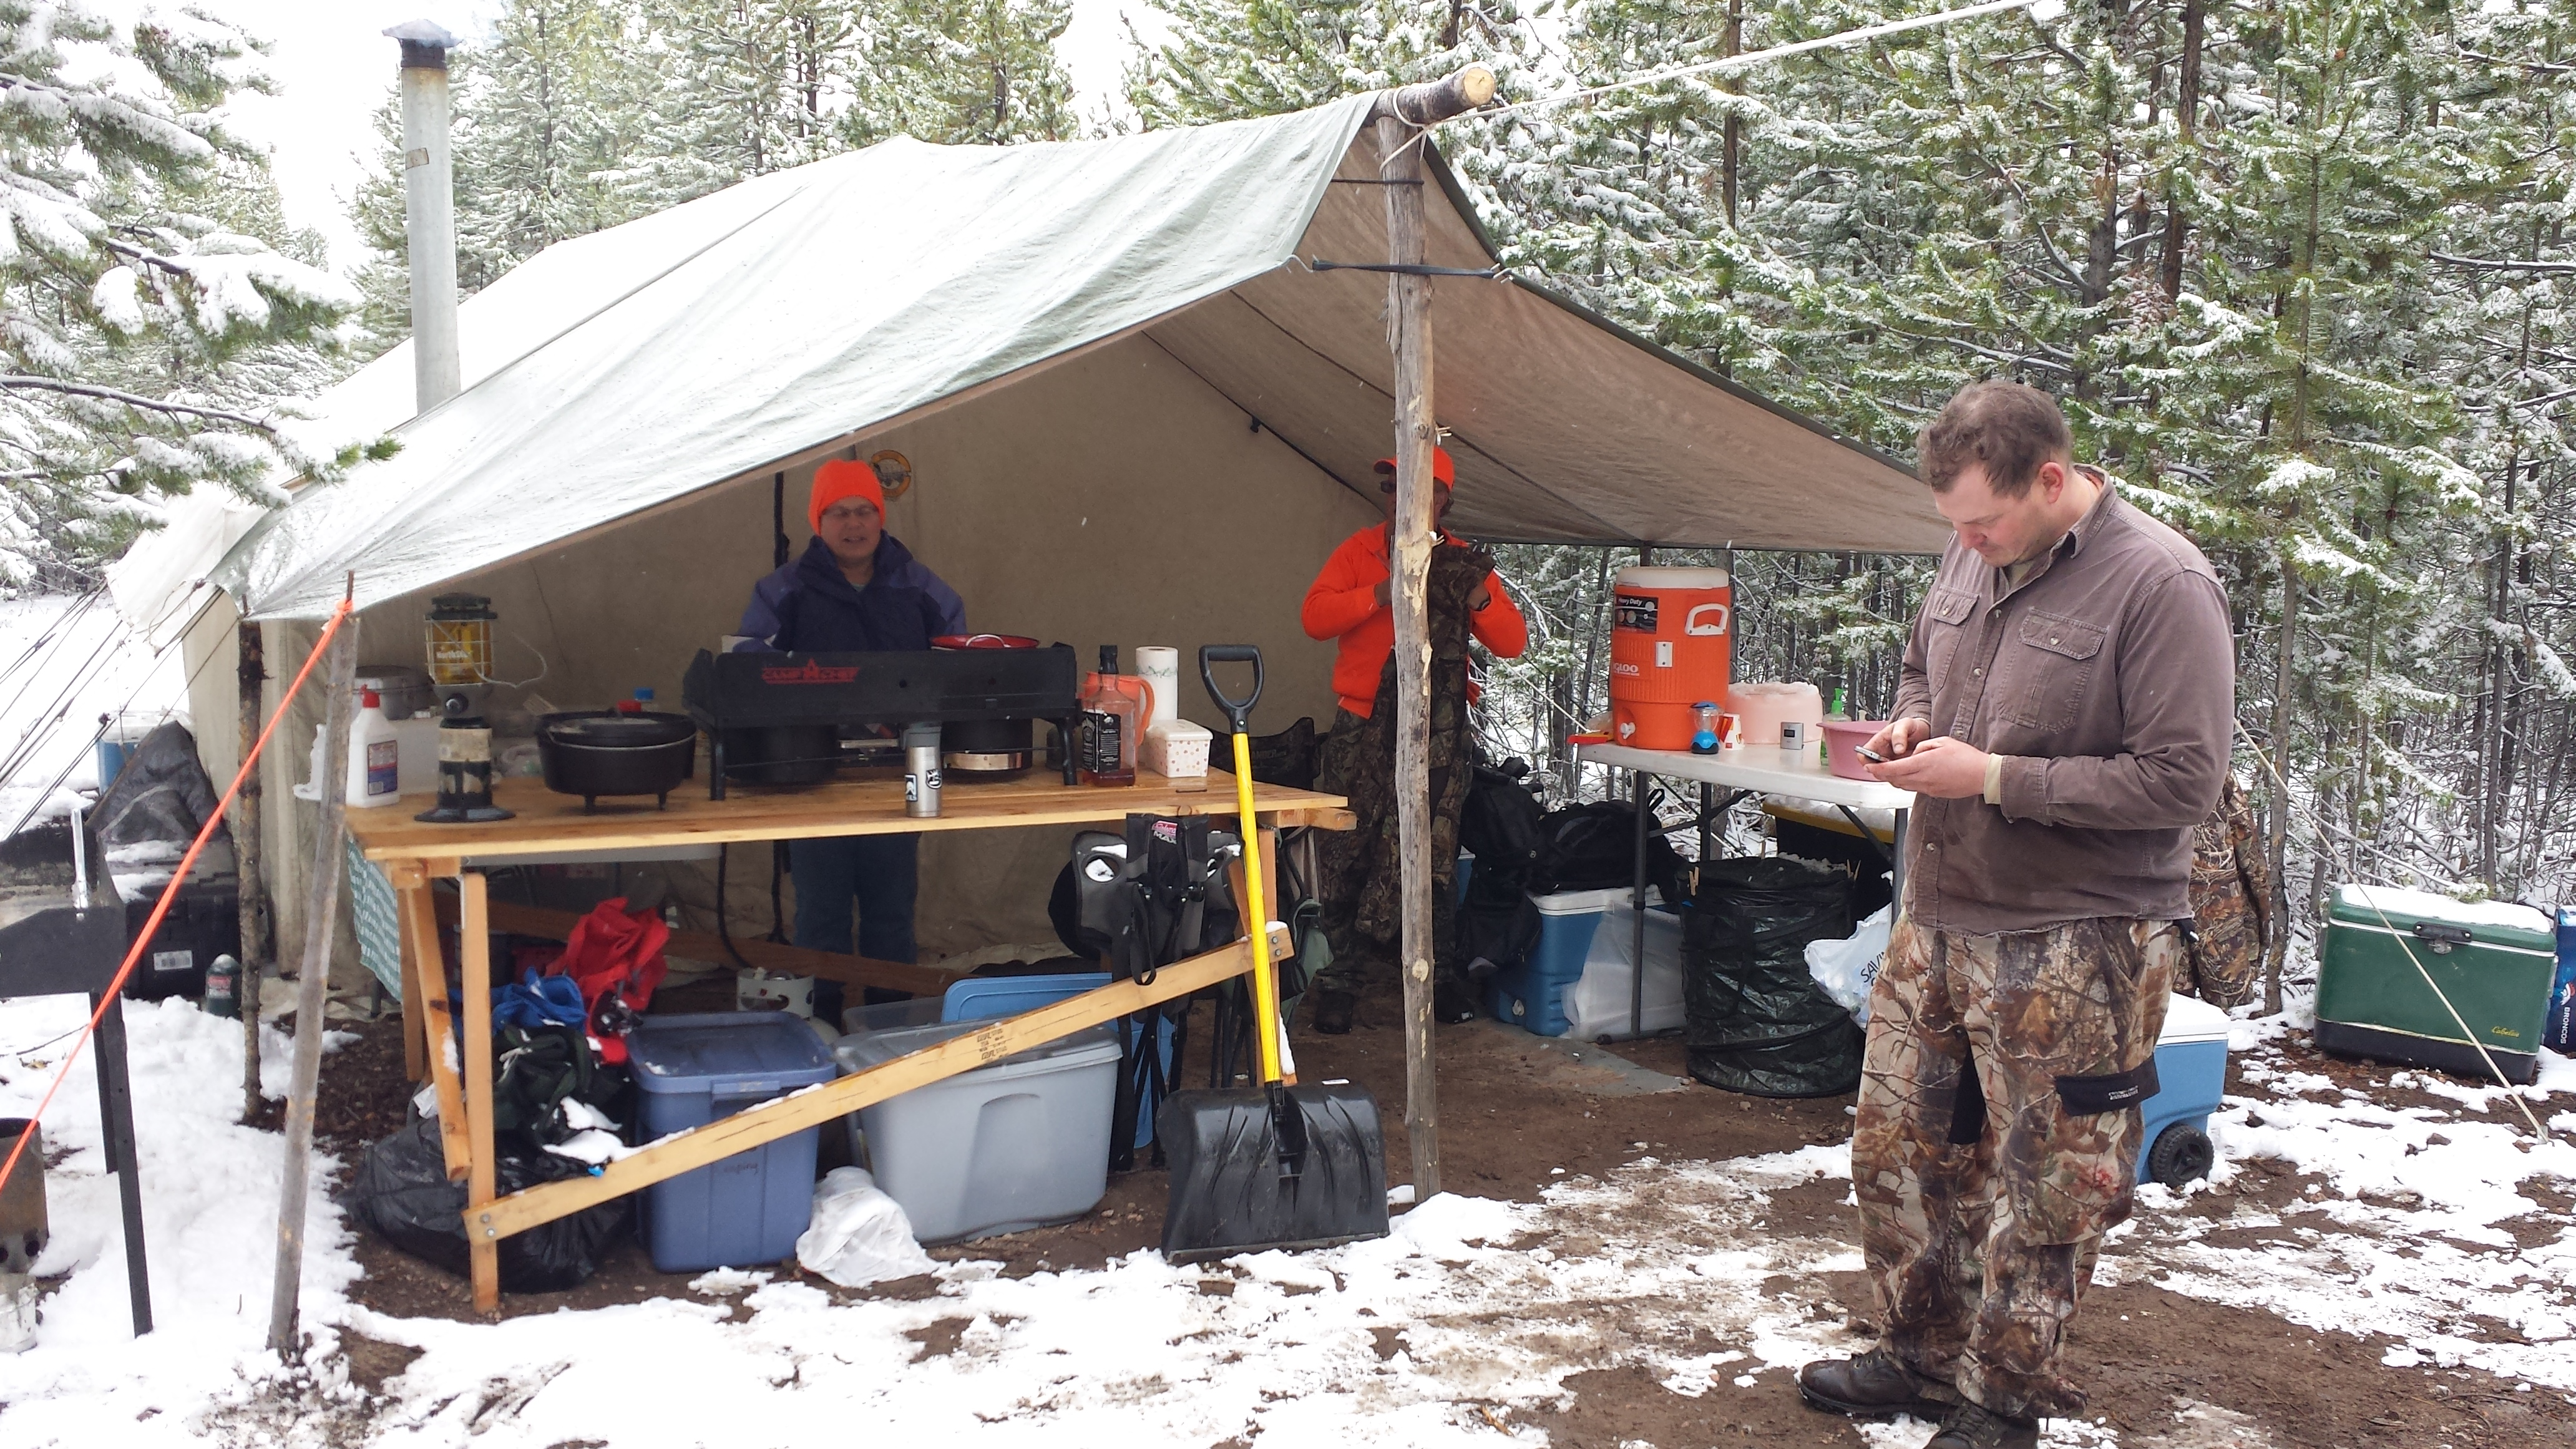 The next day (Sunday) it snowed 4-5 inches so Beth and I stayed hunkered down in the nice warm wall tent except for a walk up and down the road during a ... & Colorado | Life Really Blog